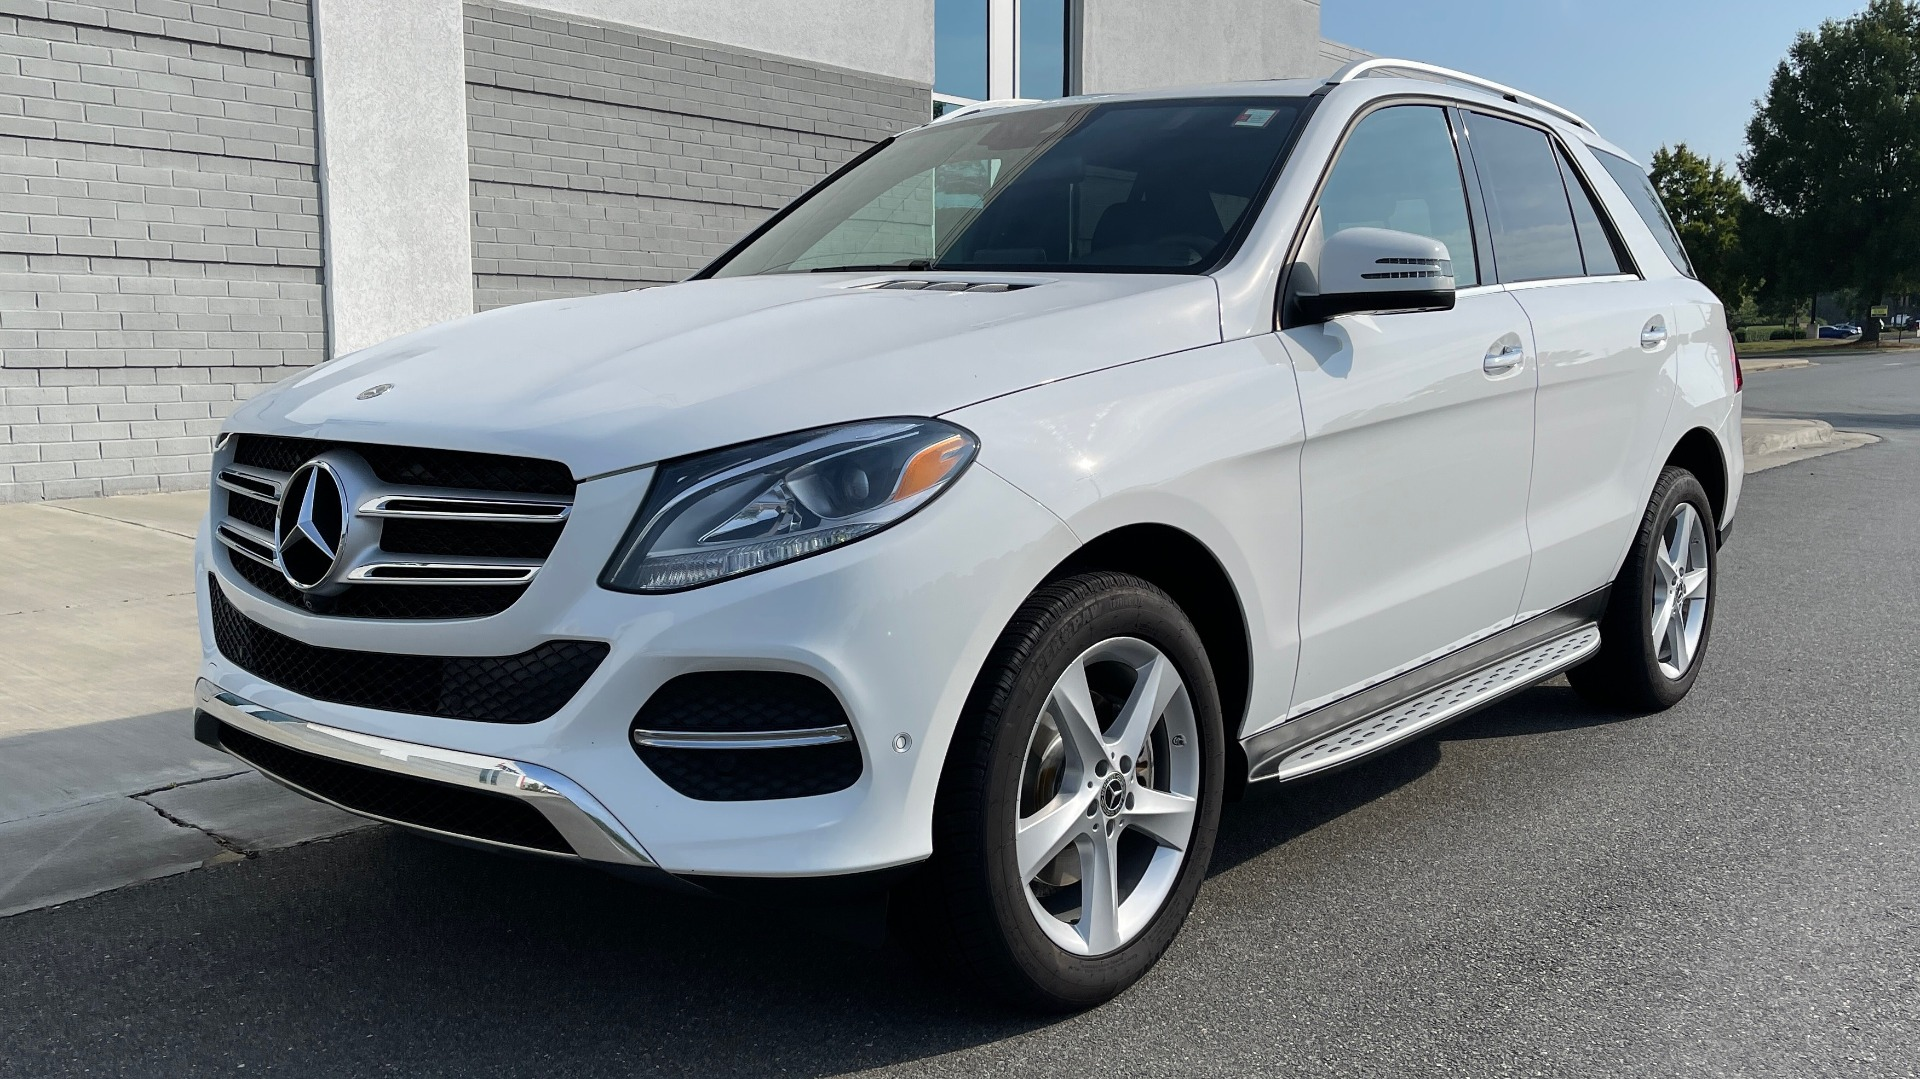 Used 2018 Mercedes-Benz GLE 350 4MATIC PREMIUM / NAV / SUNROOF / HTD STS / TRAILER HITCH / REARVIEW for sale $36,295 at Formula Imports in Charlotte NC 28227 3